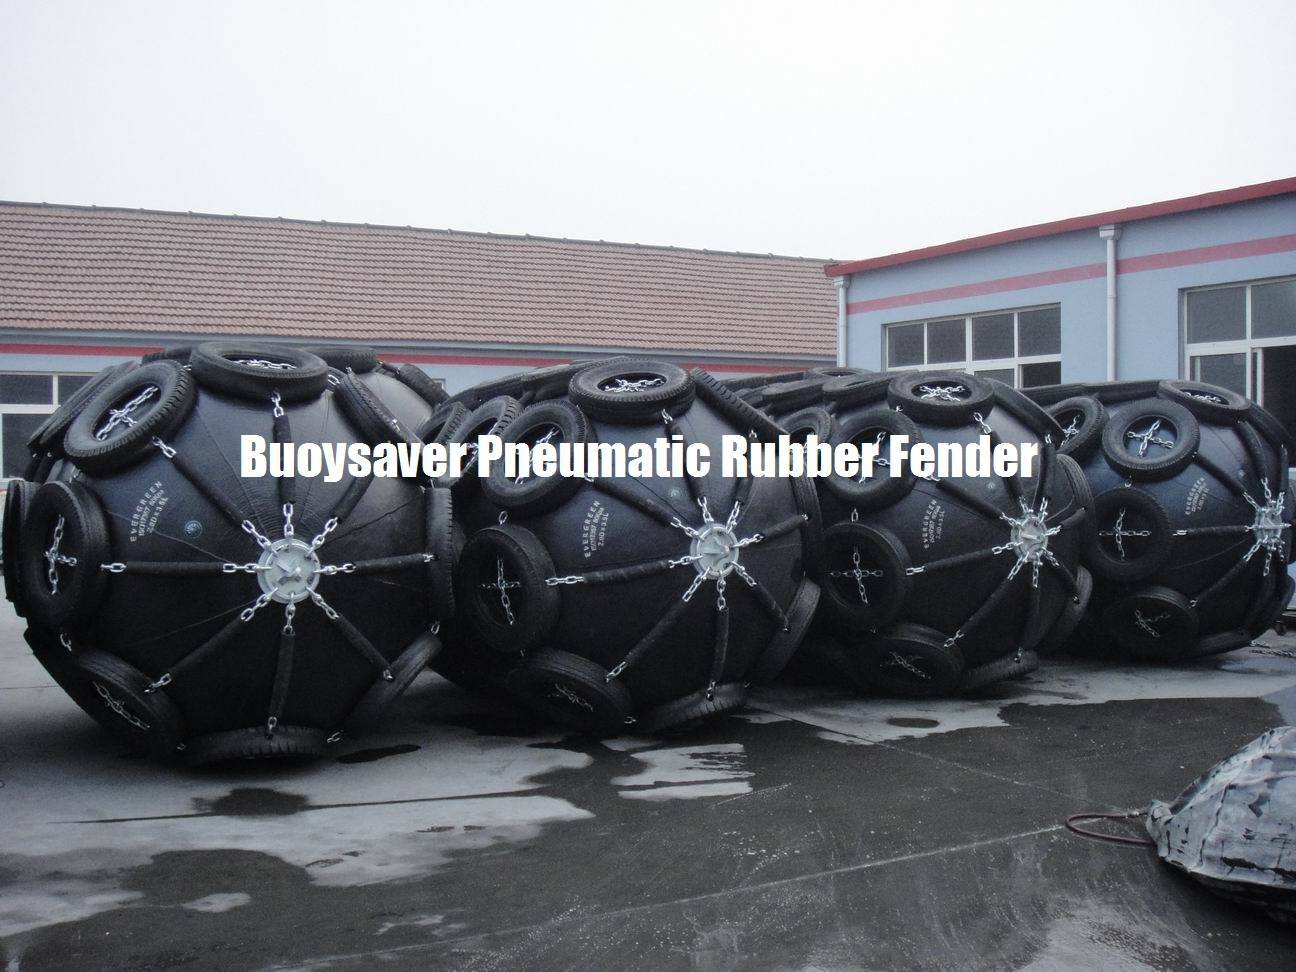 Yokohama Rubber Fender, ABS,DNV,LR,BV & GL certificated, Up to 4500x9000mm extra-large size.